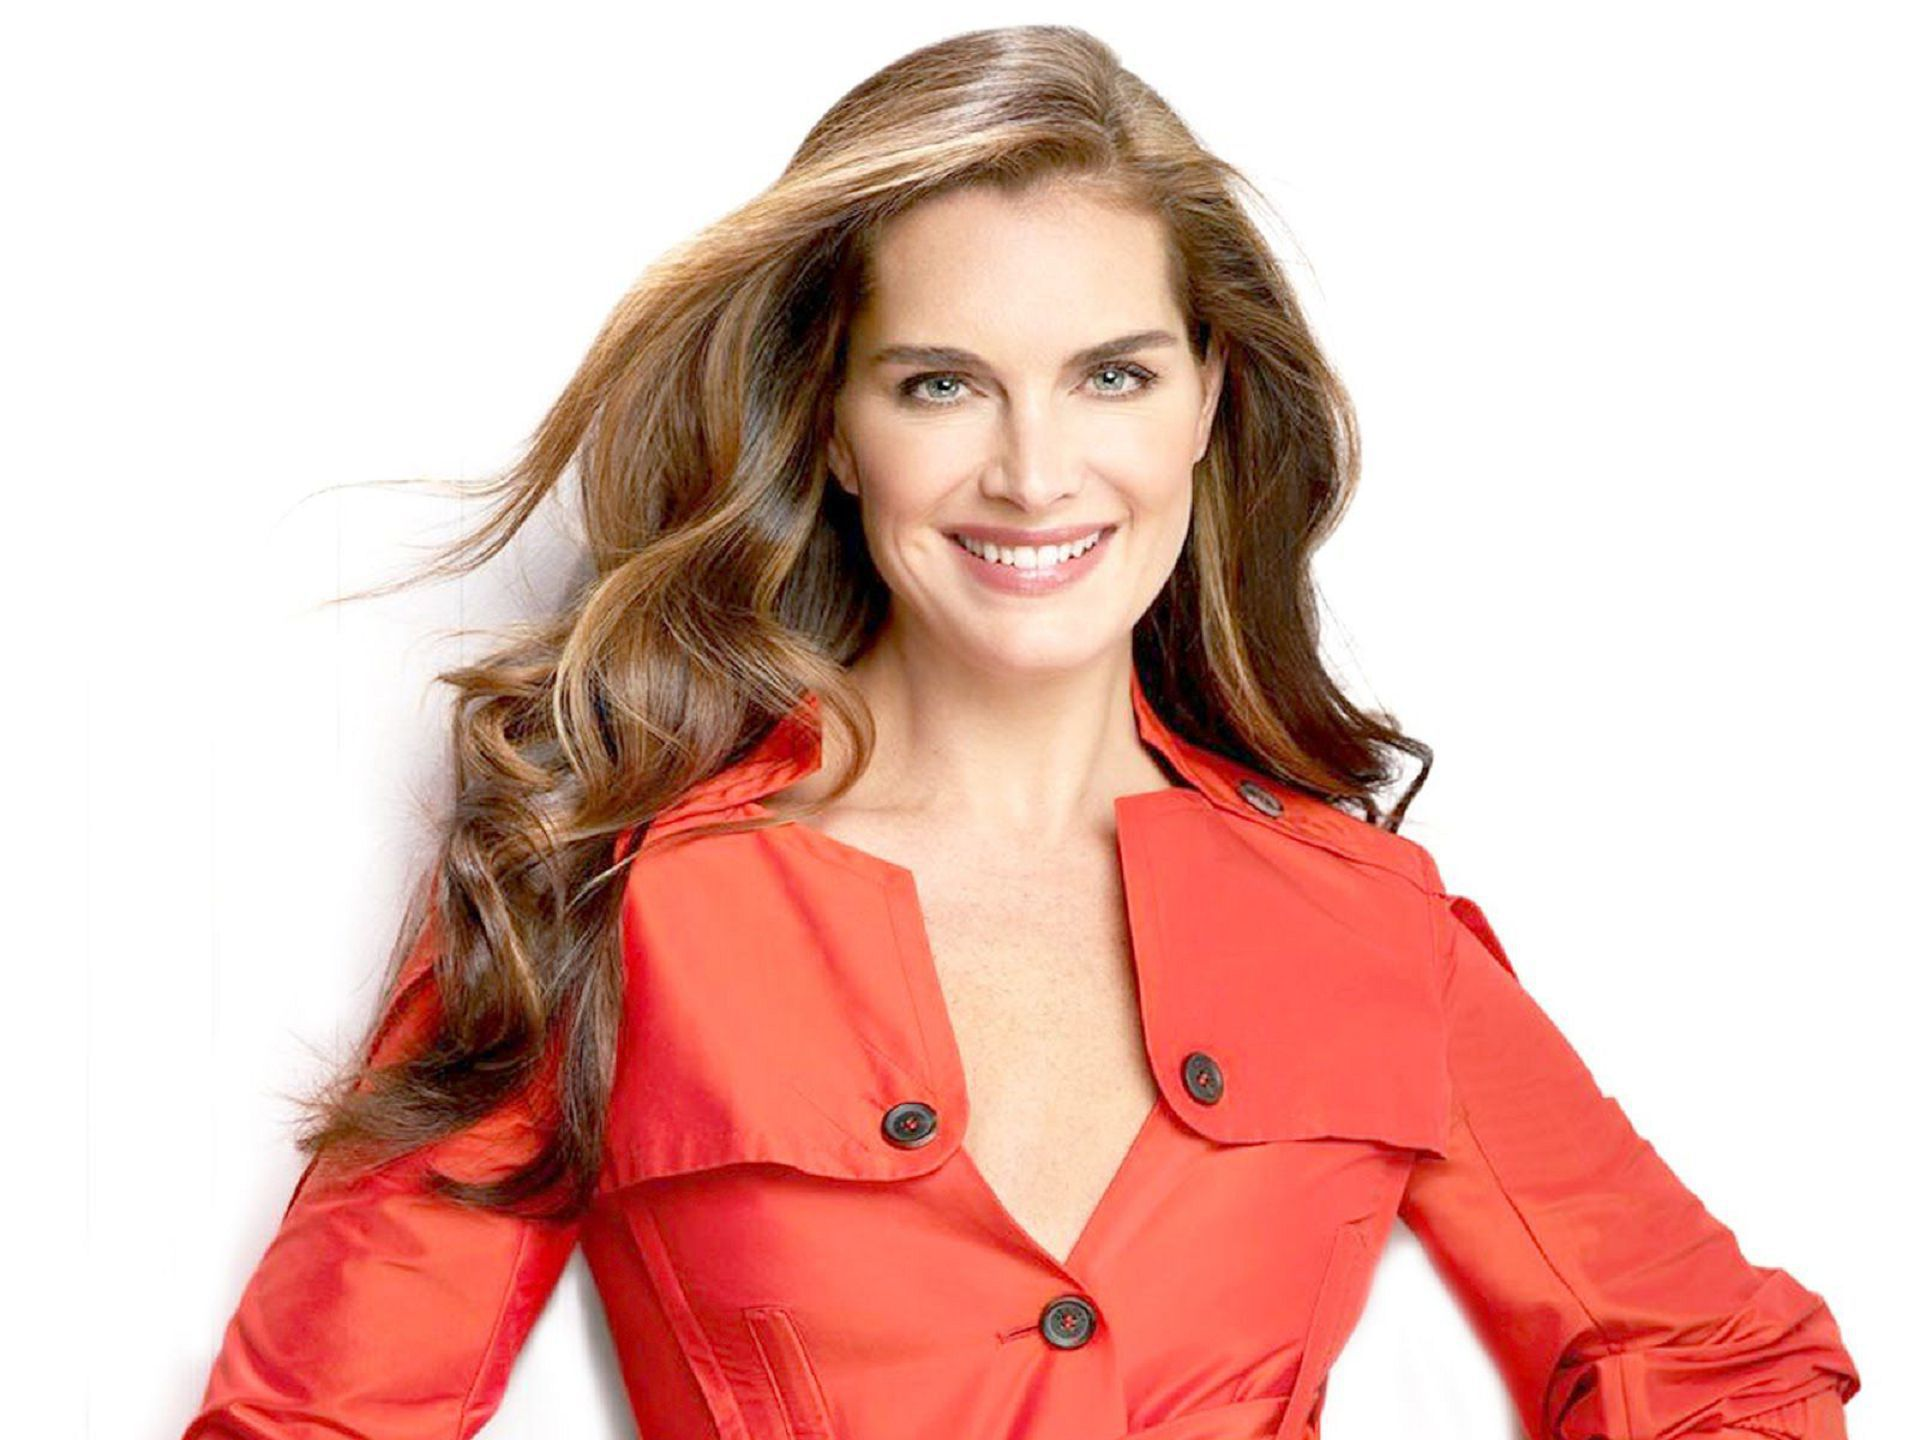 Brooke Shields Widescreen